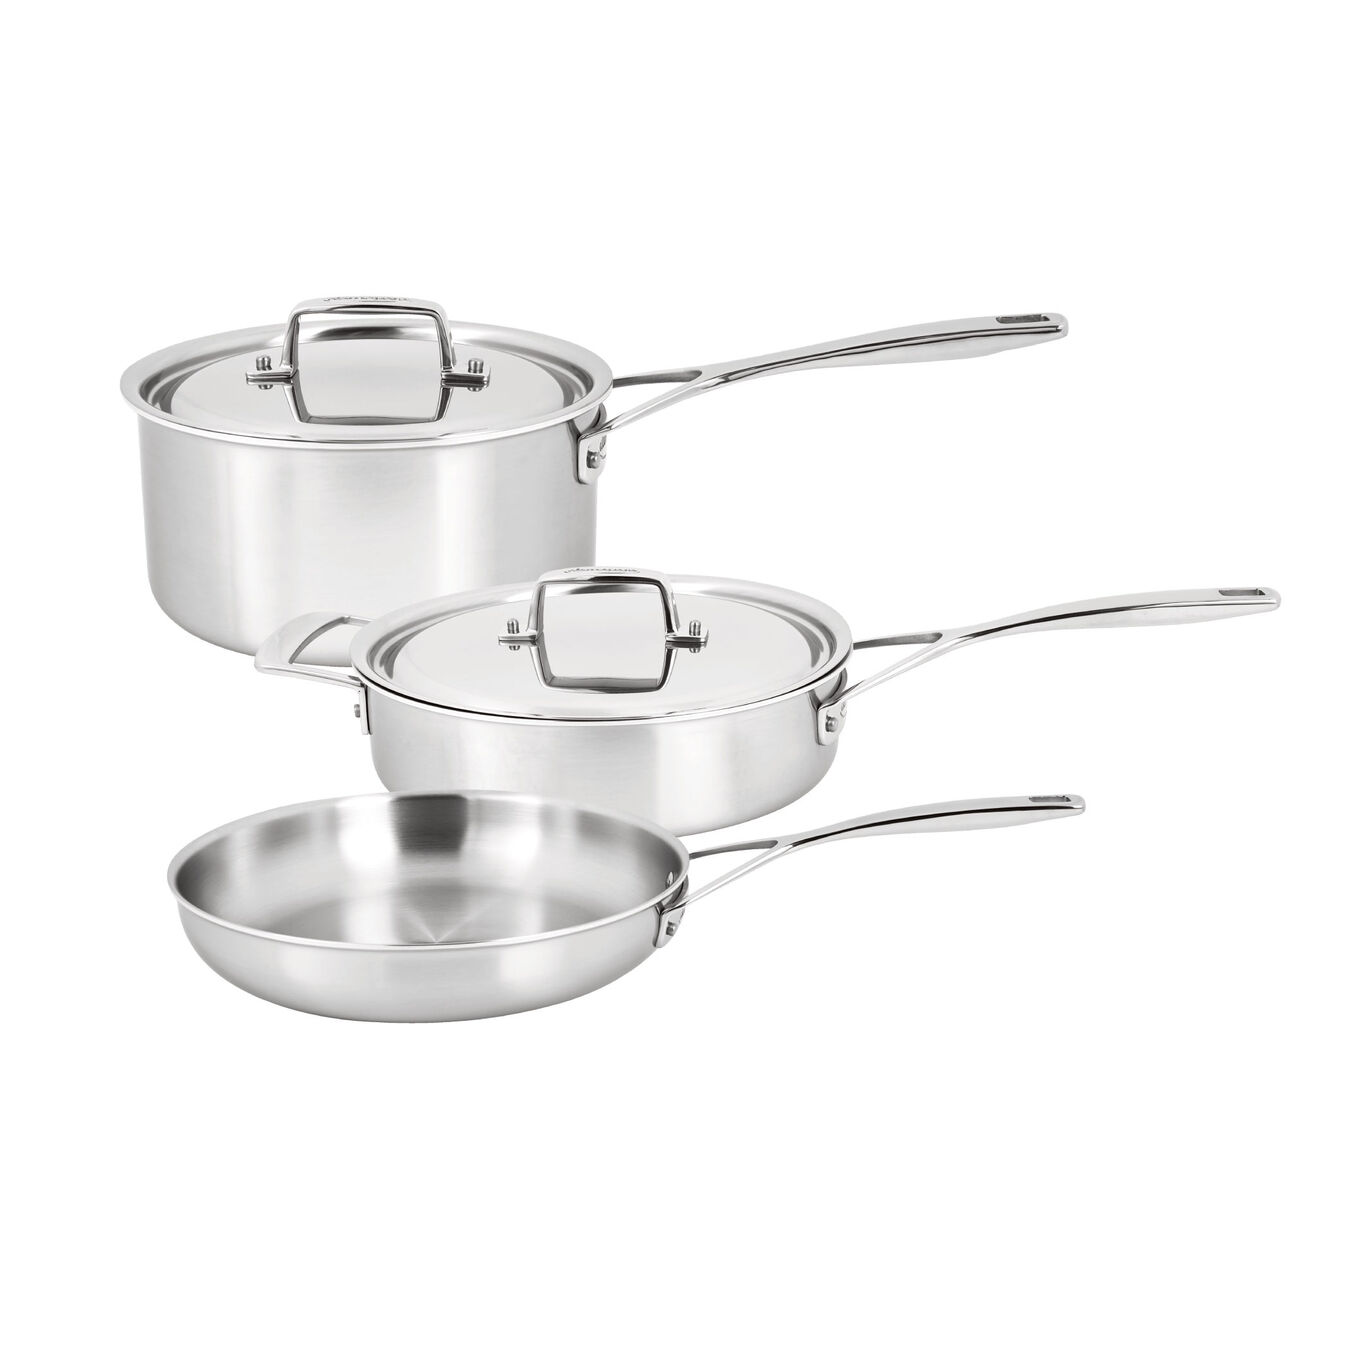 5 Piece 18/10 Stainless Steel Cookware set,,large 1